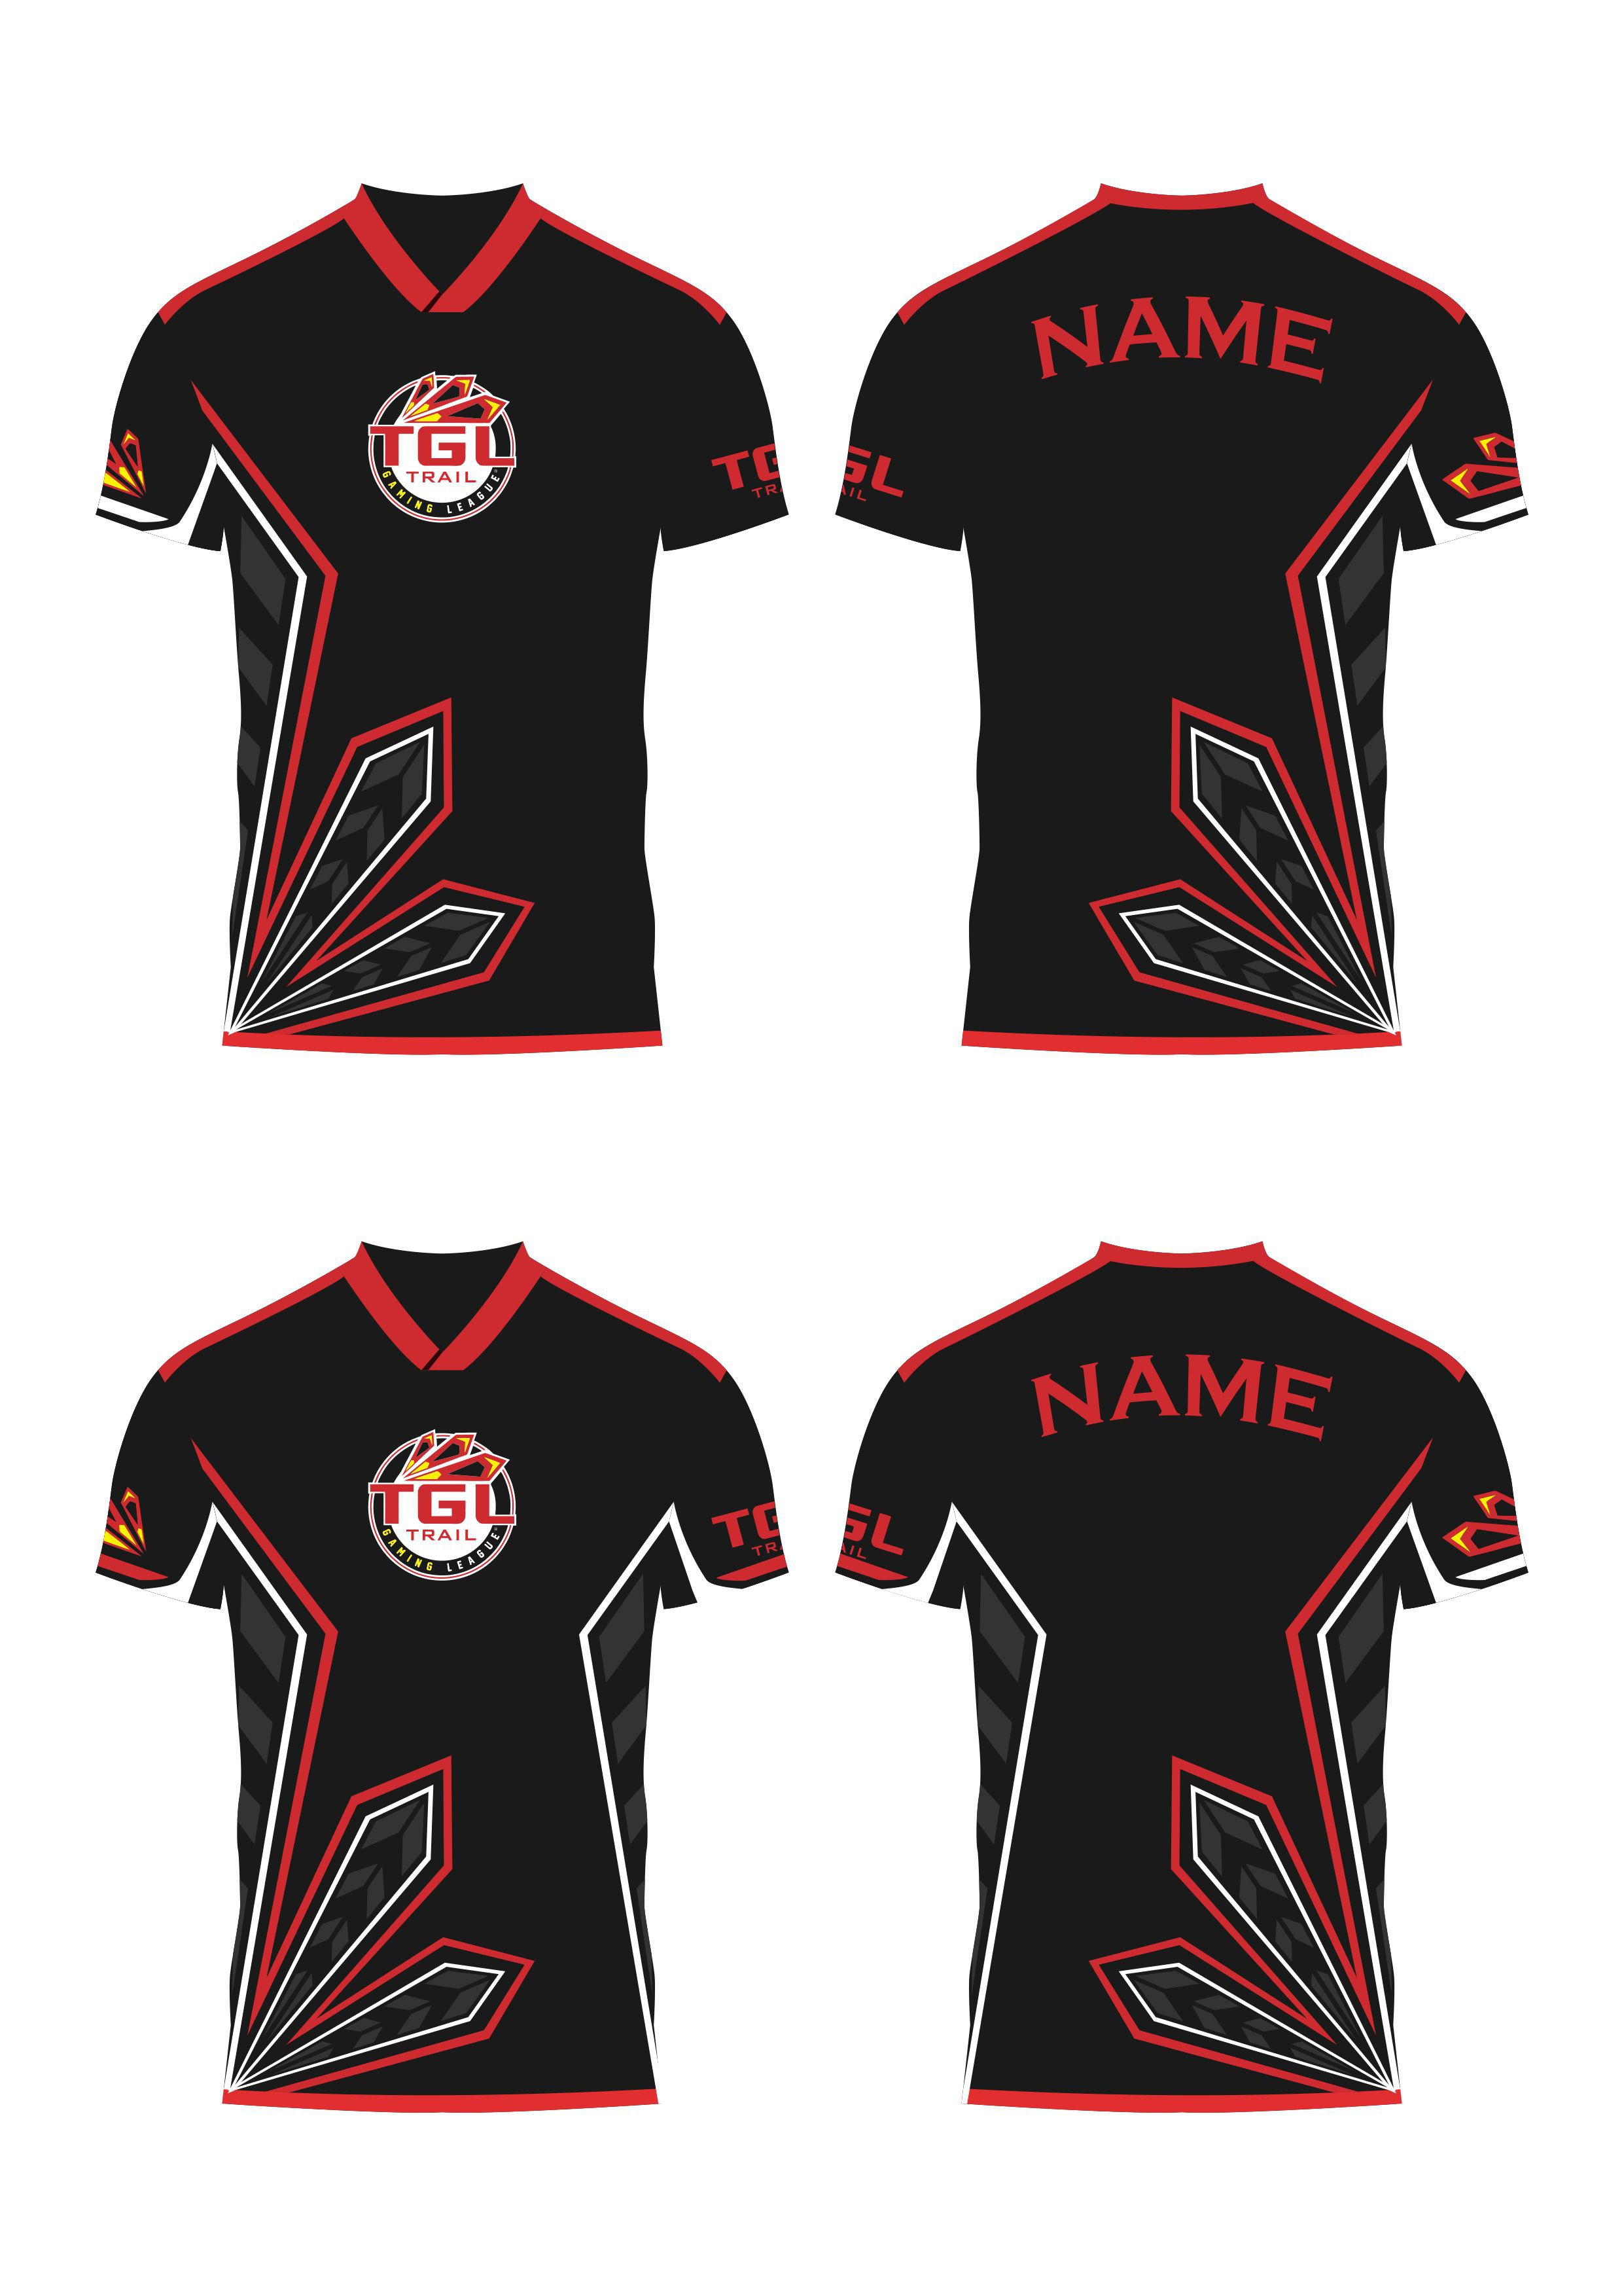 Jersey for E-Sports Team